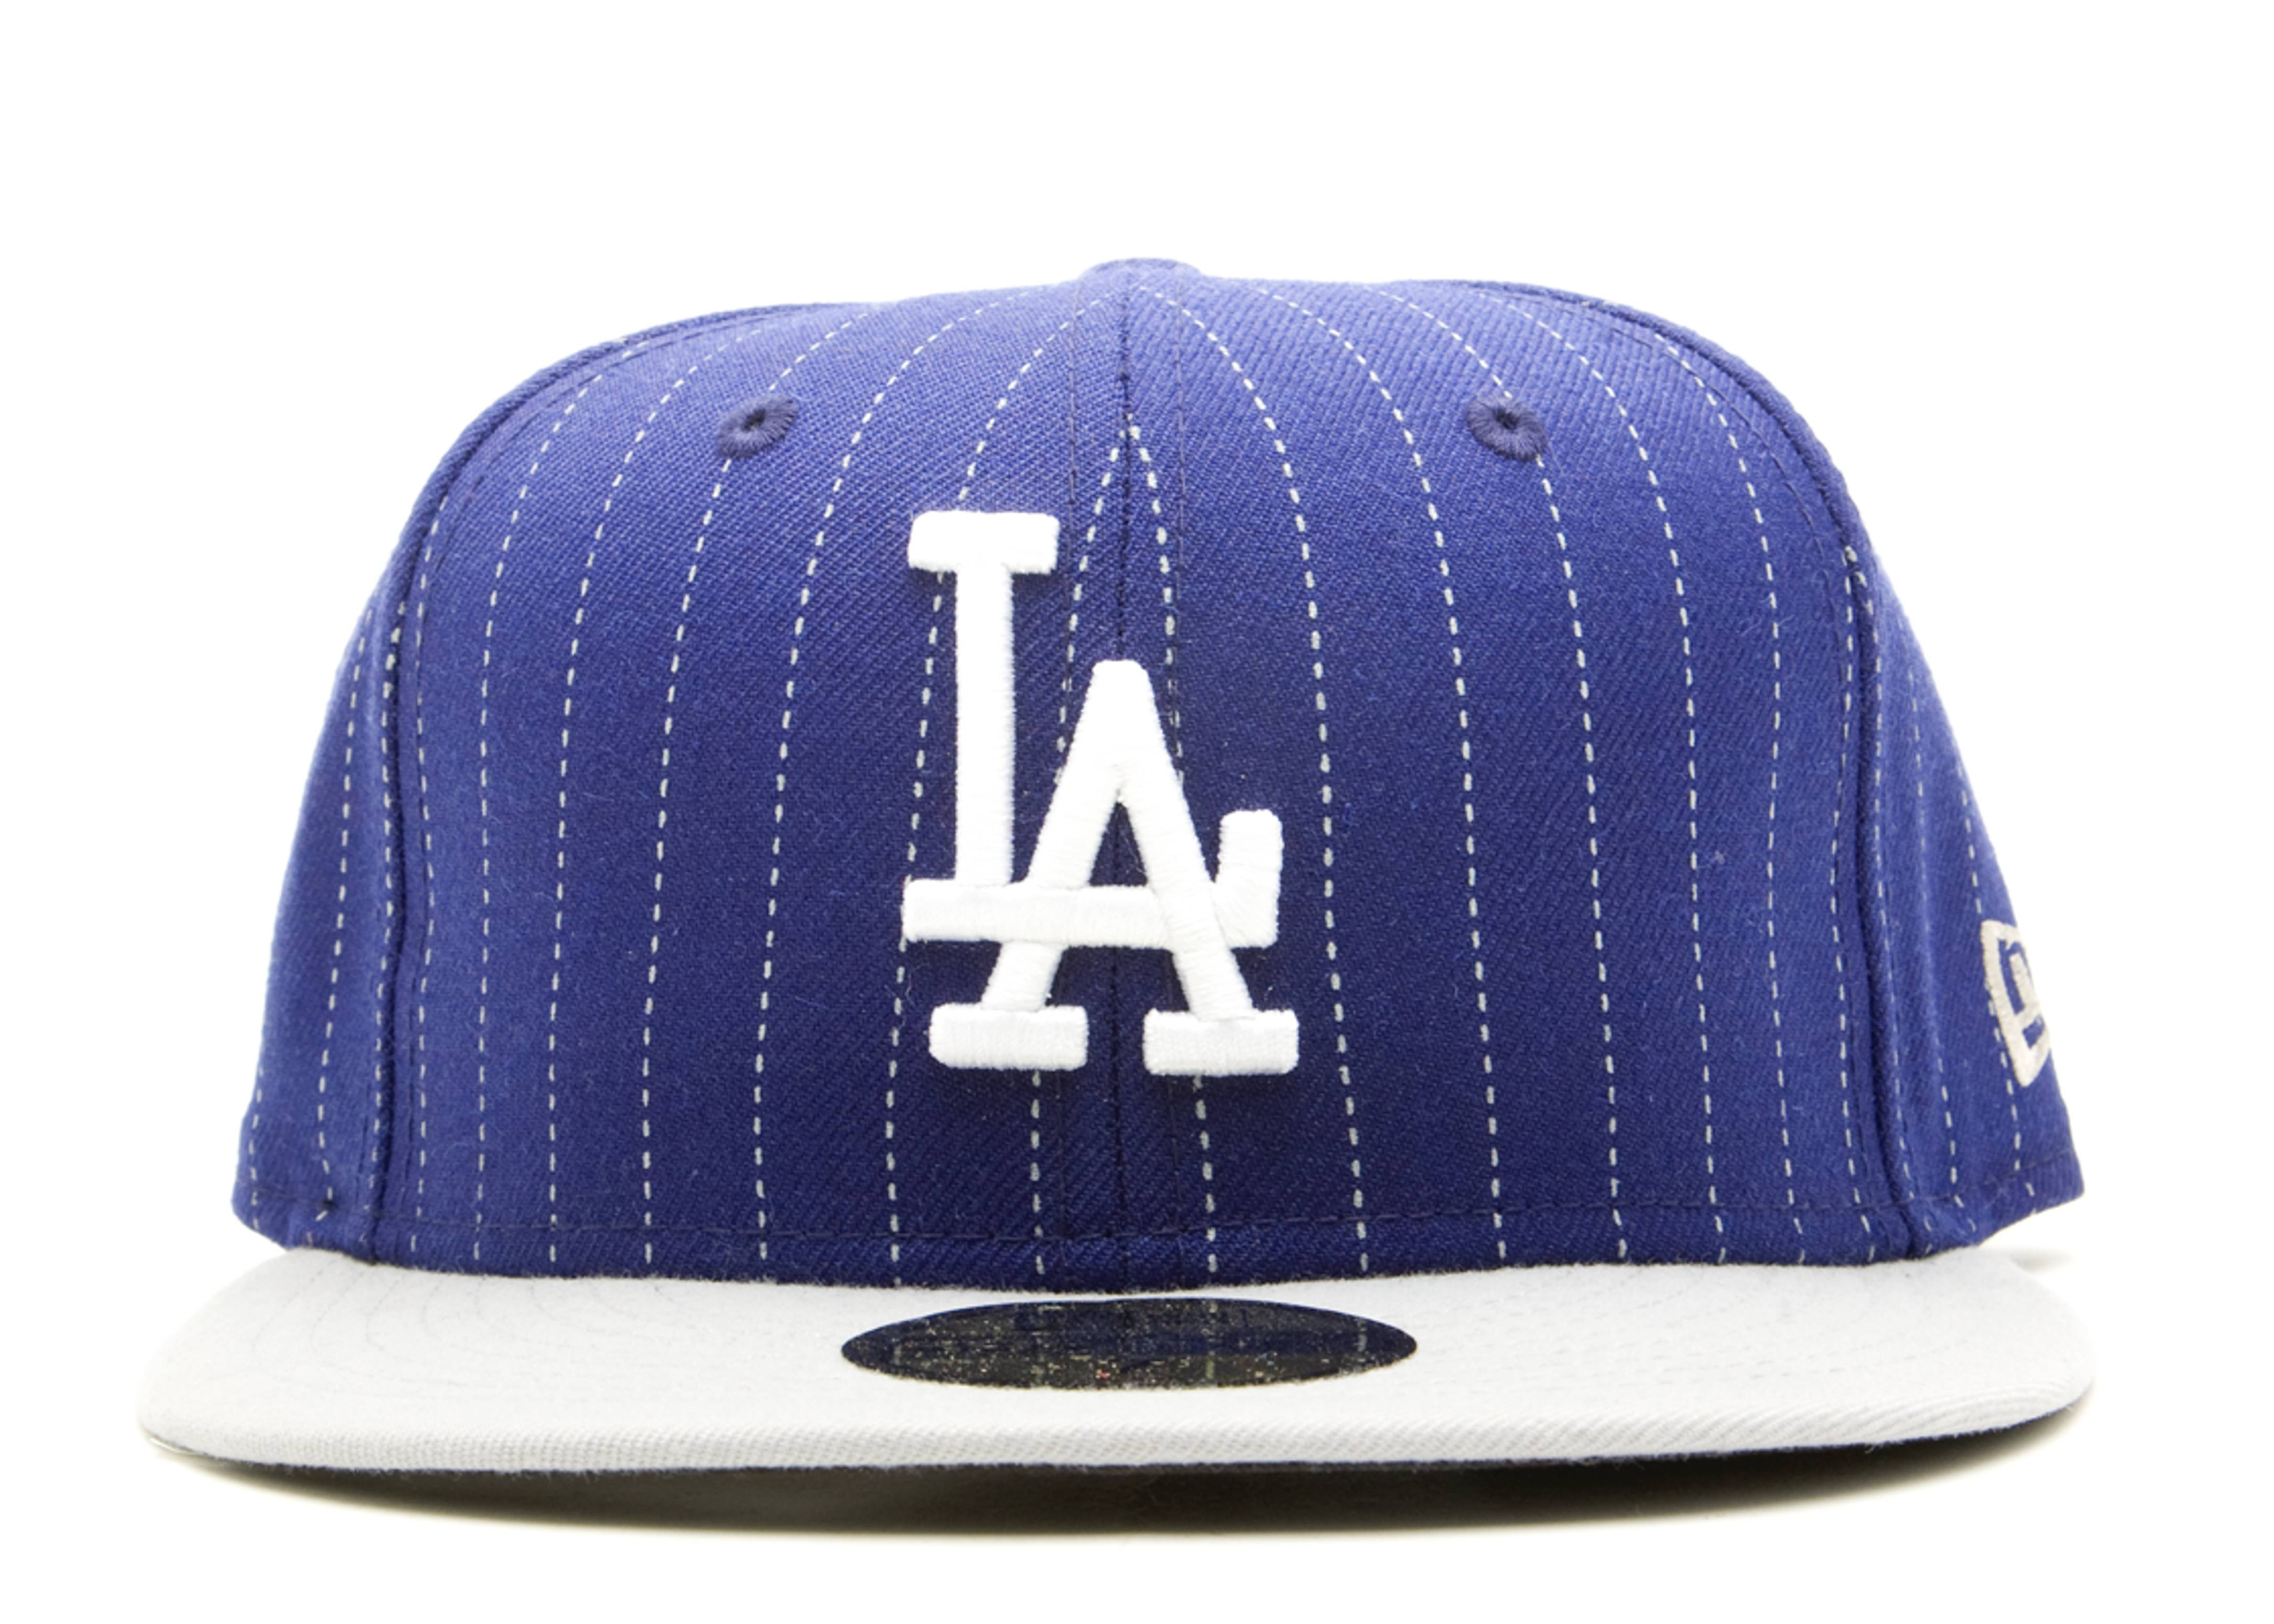 los angeles dodgers stripe fitted